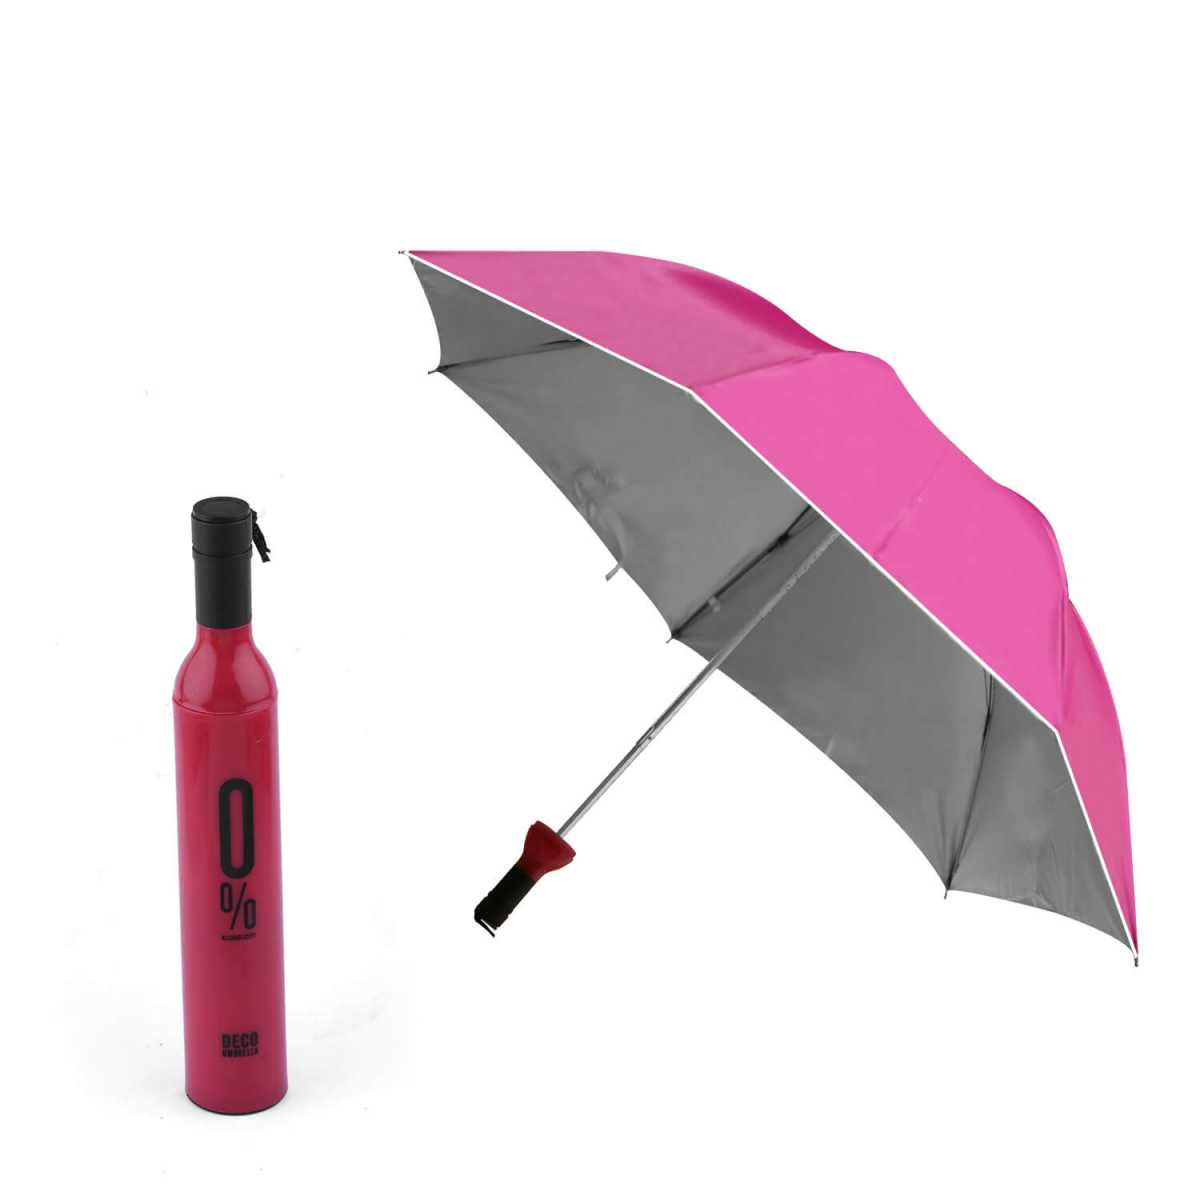 Silver Shine Products Double Layer Folding Portable Wine Bottle Umbrella with Bottle Cover for UV Protection & Rain (Assorted Color)